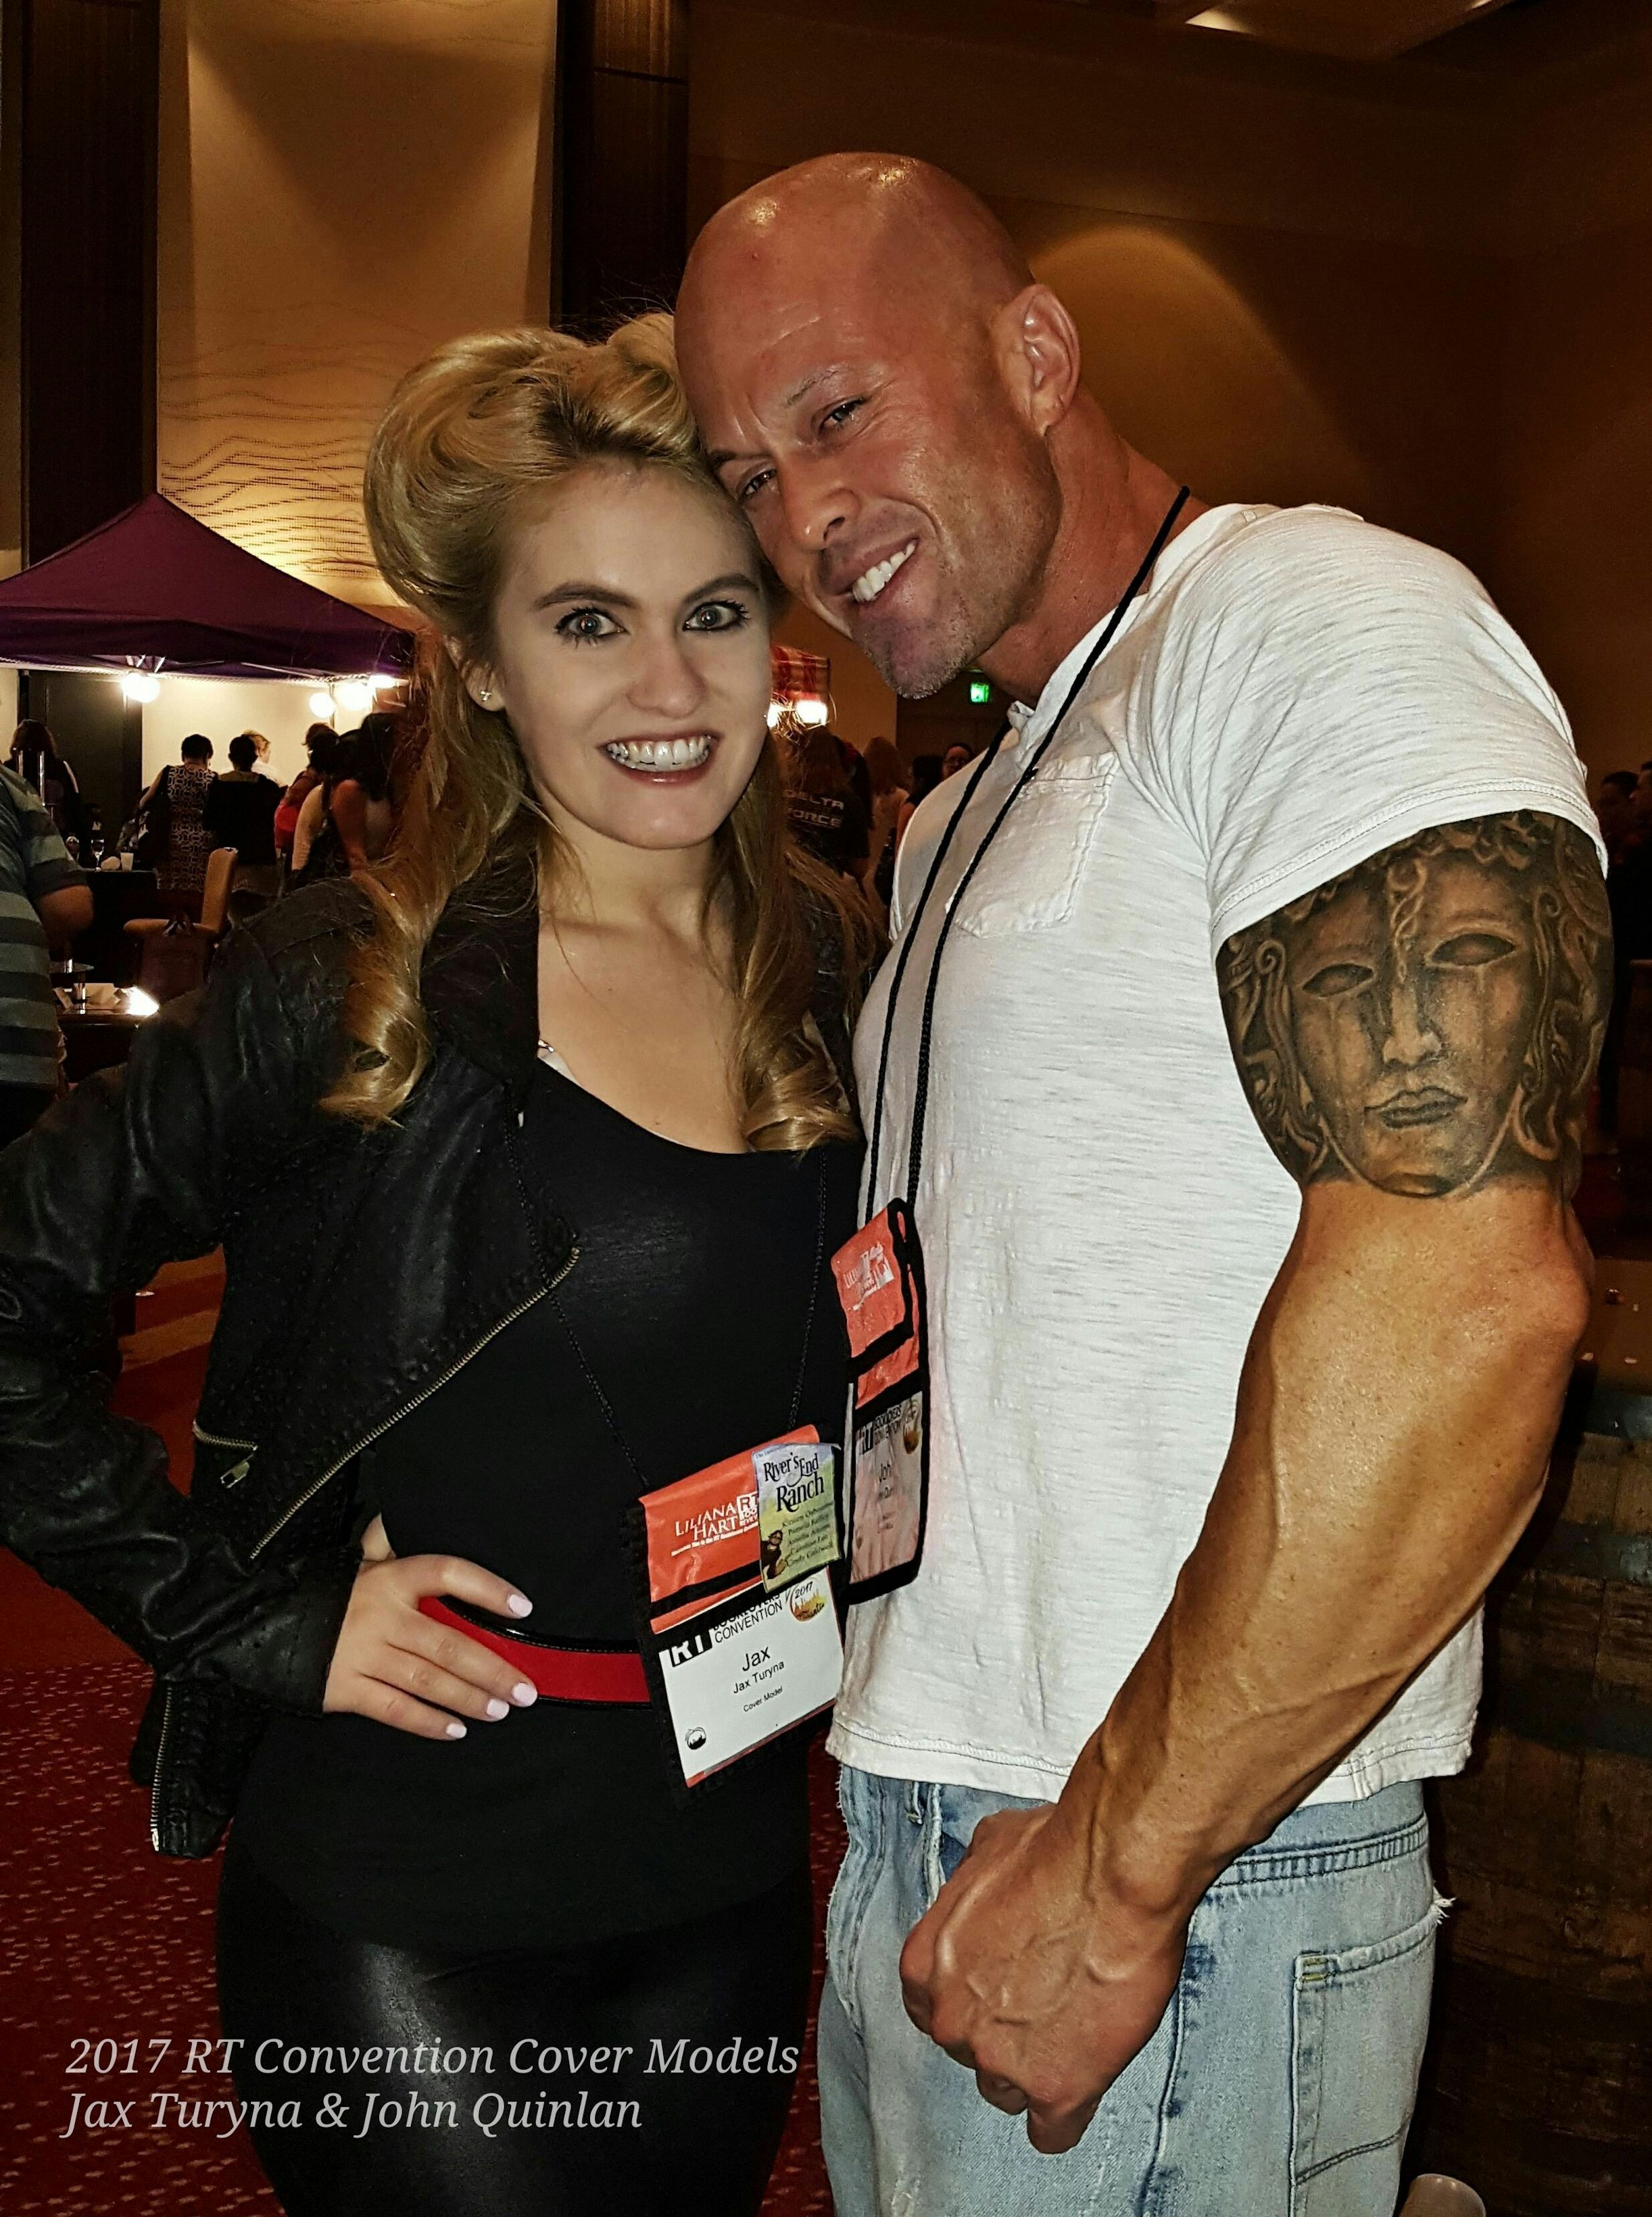 2017 RT Convention Cover Model & Actor John Joseph Quinlan with Jax Turyna #JohnQuinlan